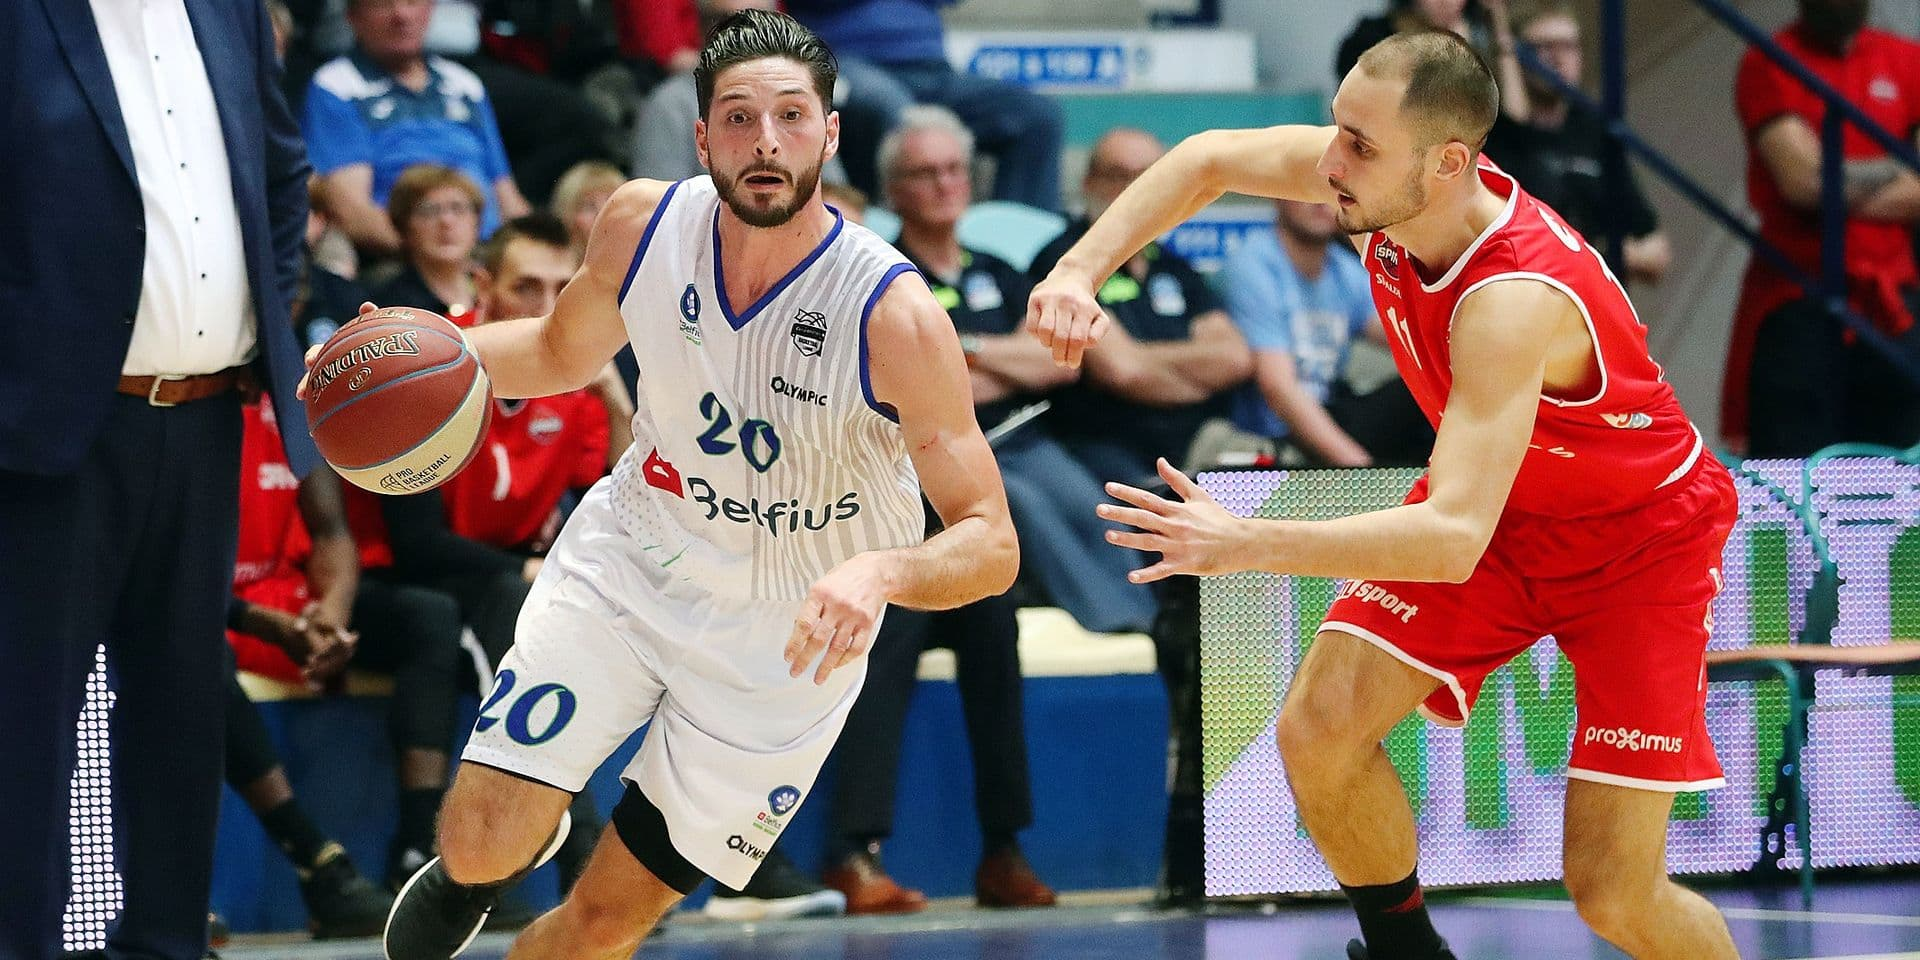 Mons' Lorenzo Giancaterino and Charleroi's Sami Demirtas fight for the ball during the basketball match between Mons-Hainaut and Spirou-Charleroi, Saturday 16 February 2019 in Mons, on day 17 of the 'EuroMillions League' Belgian first division basket competition. BELGA PHOTO VIRGINIE LEFOUR